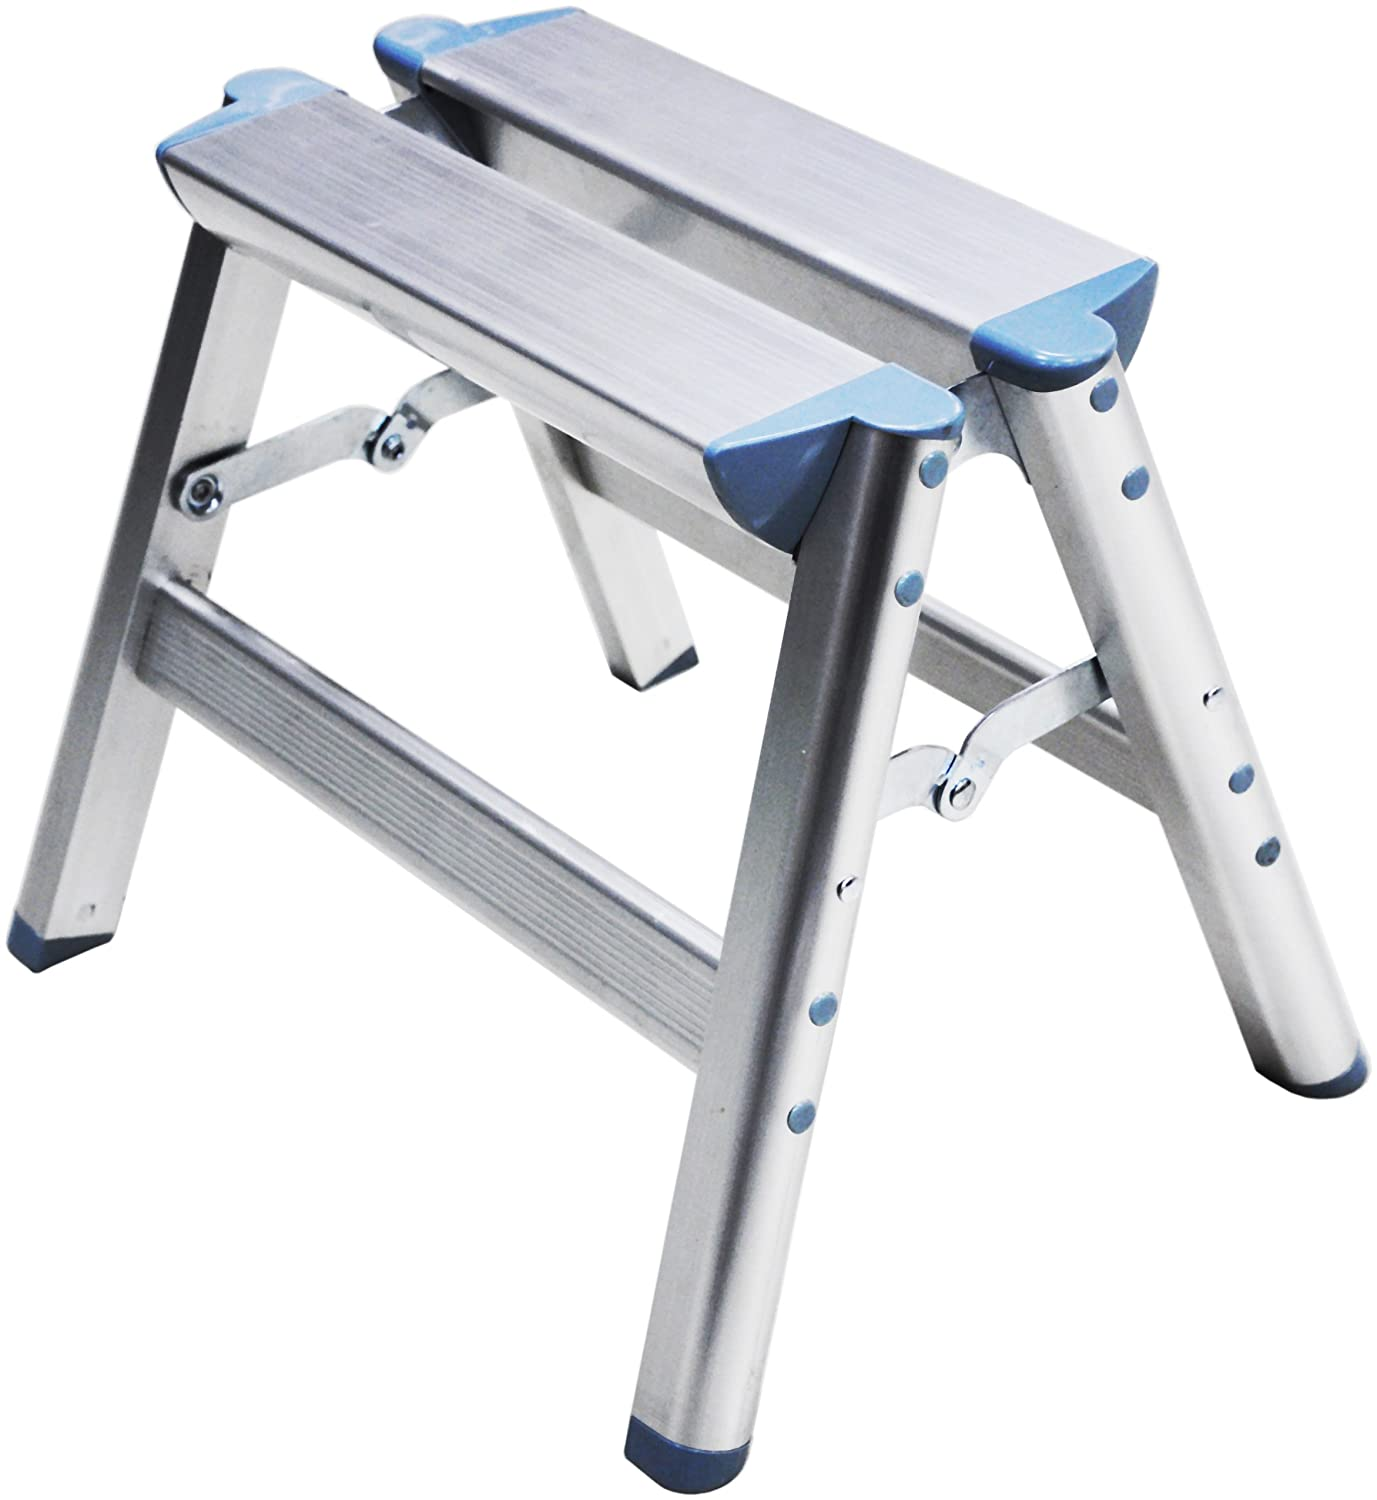 Telesteps 100SS OSHA Compliant 12 inch Aluminum Folding Step Stool - - Amazon.com  sc 1 st  Amazon.com : folding one step stool - islam-shia.org